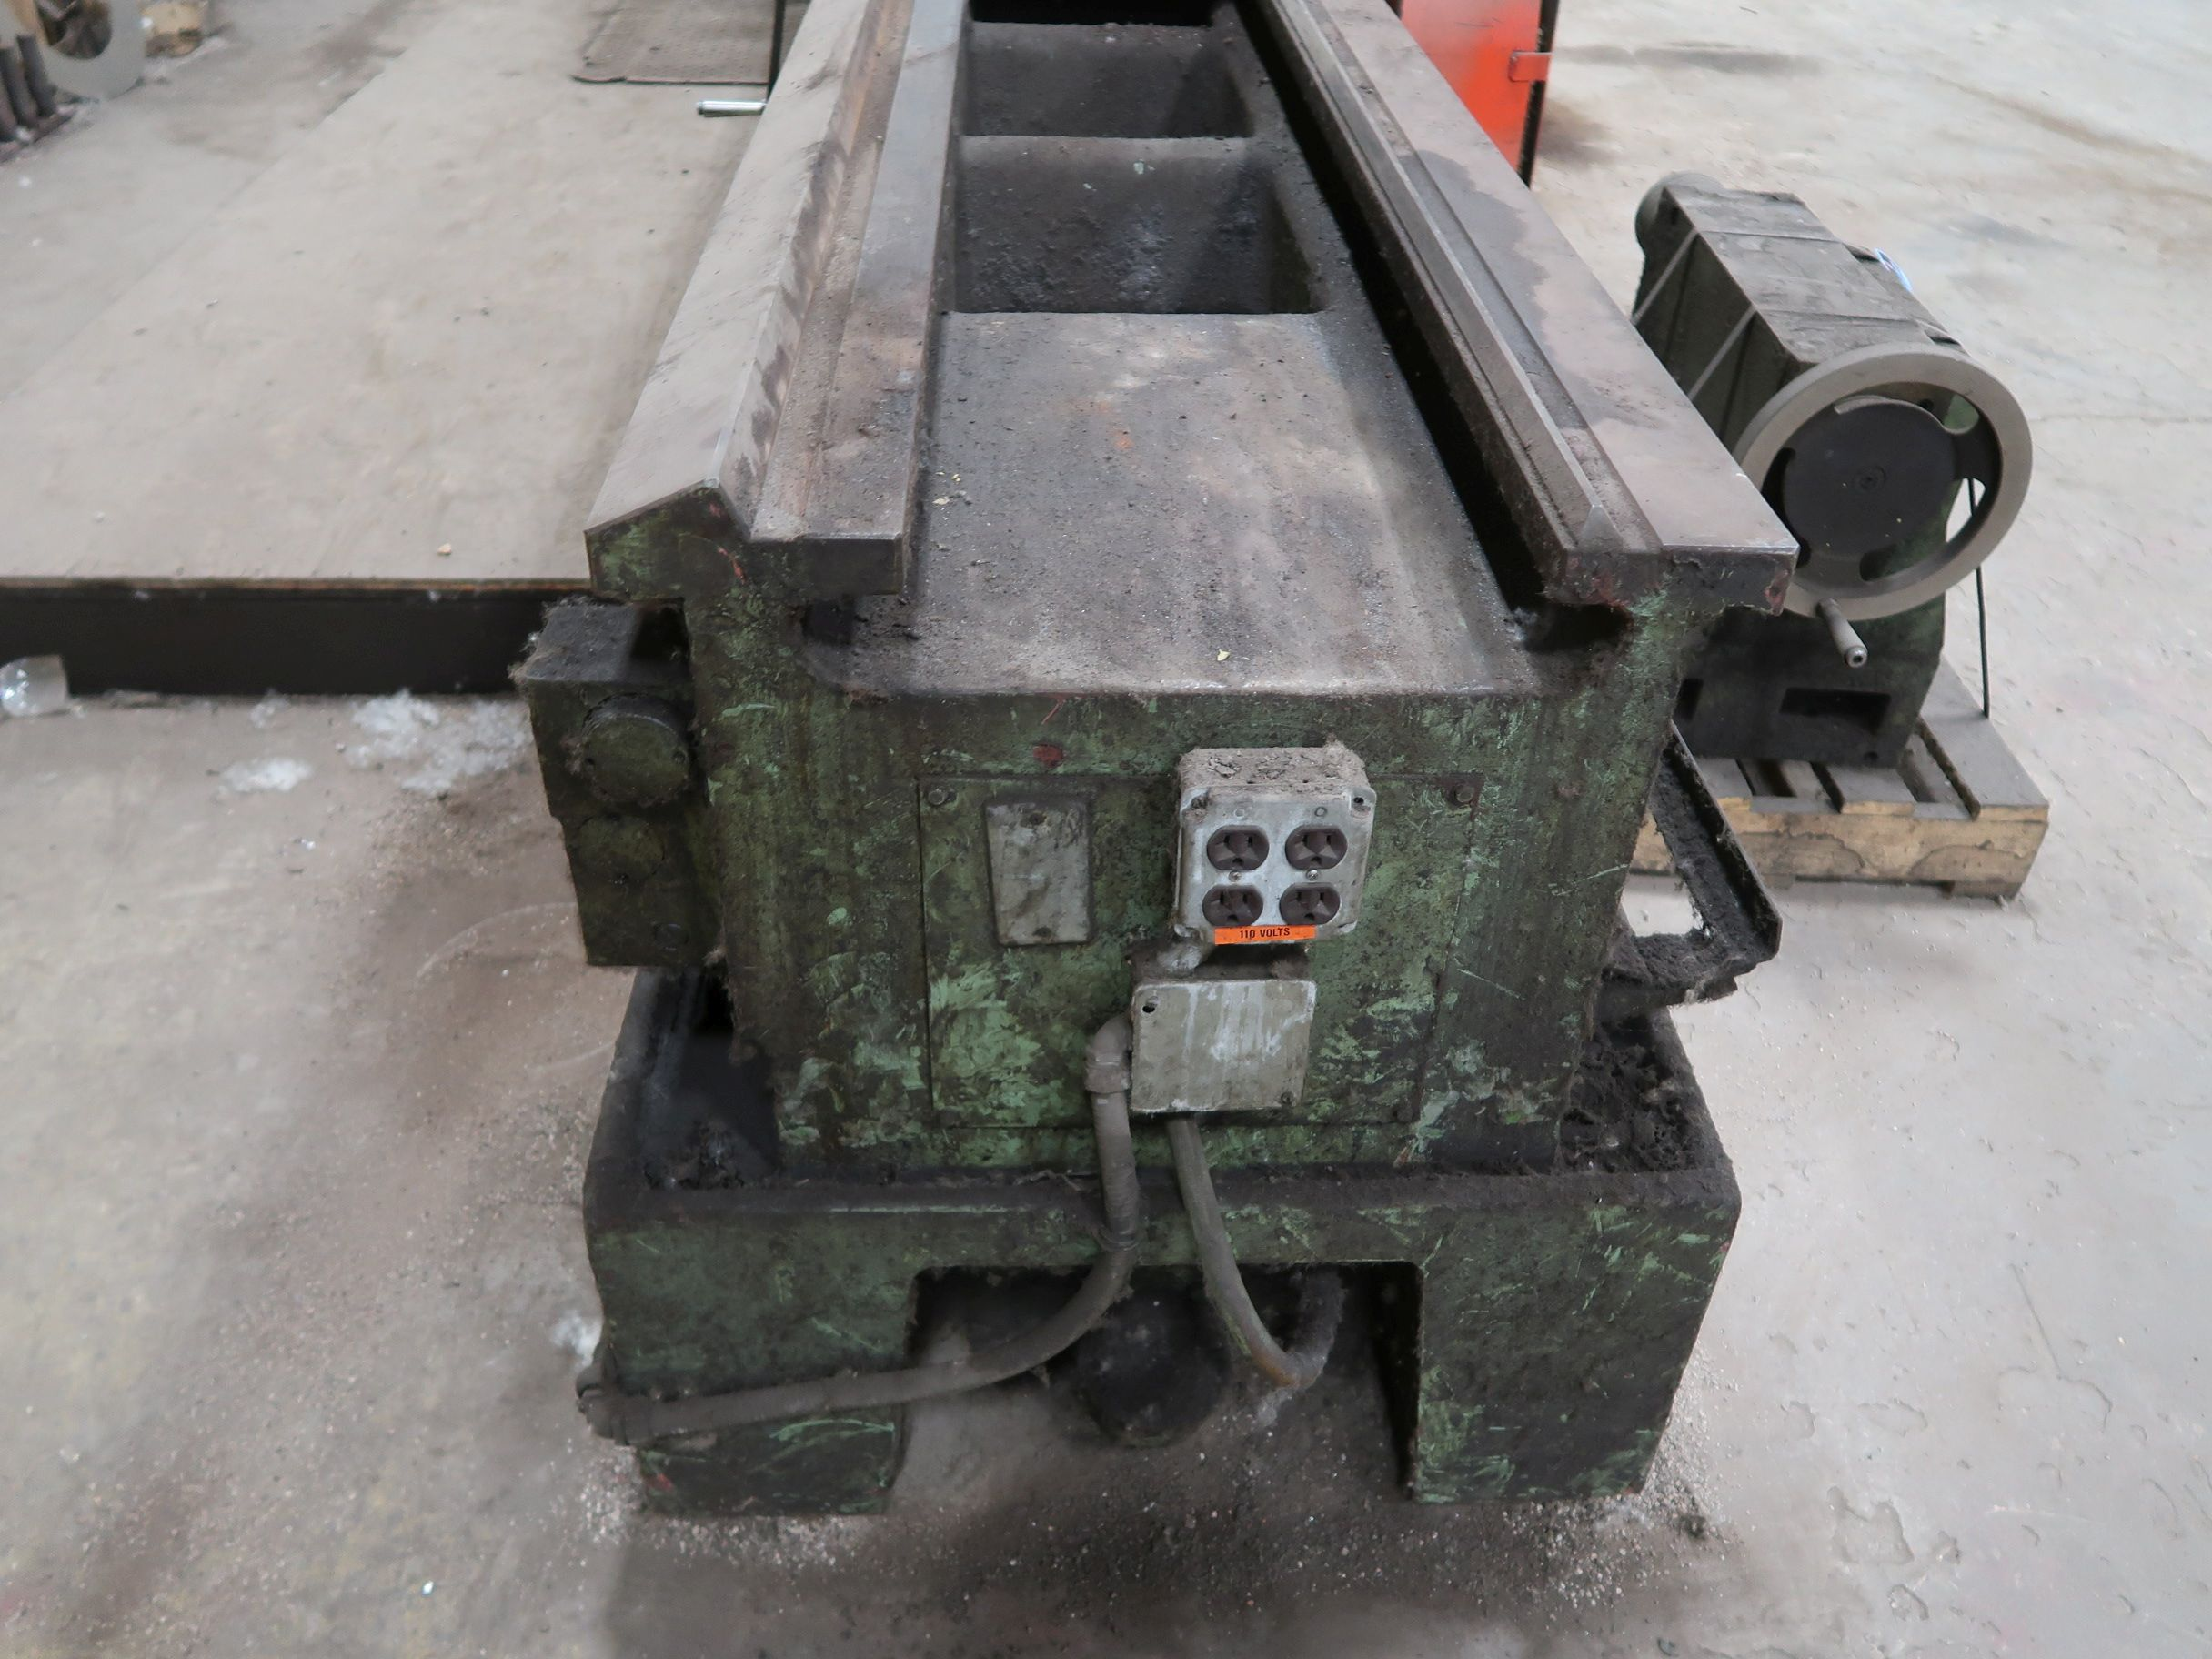 """40"""" X 160"""" GRUTZPE TIMEMASTER MODEL 4000/500 DOUBLE CHUCK ENGINE LATHE; SPEEDS TO 500 RPM, APPROX. - Image 12 of 14"""